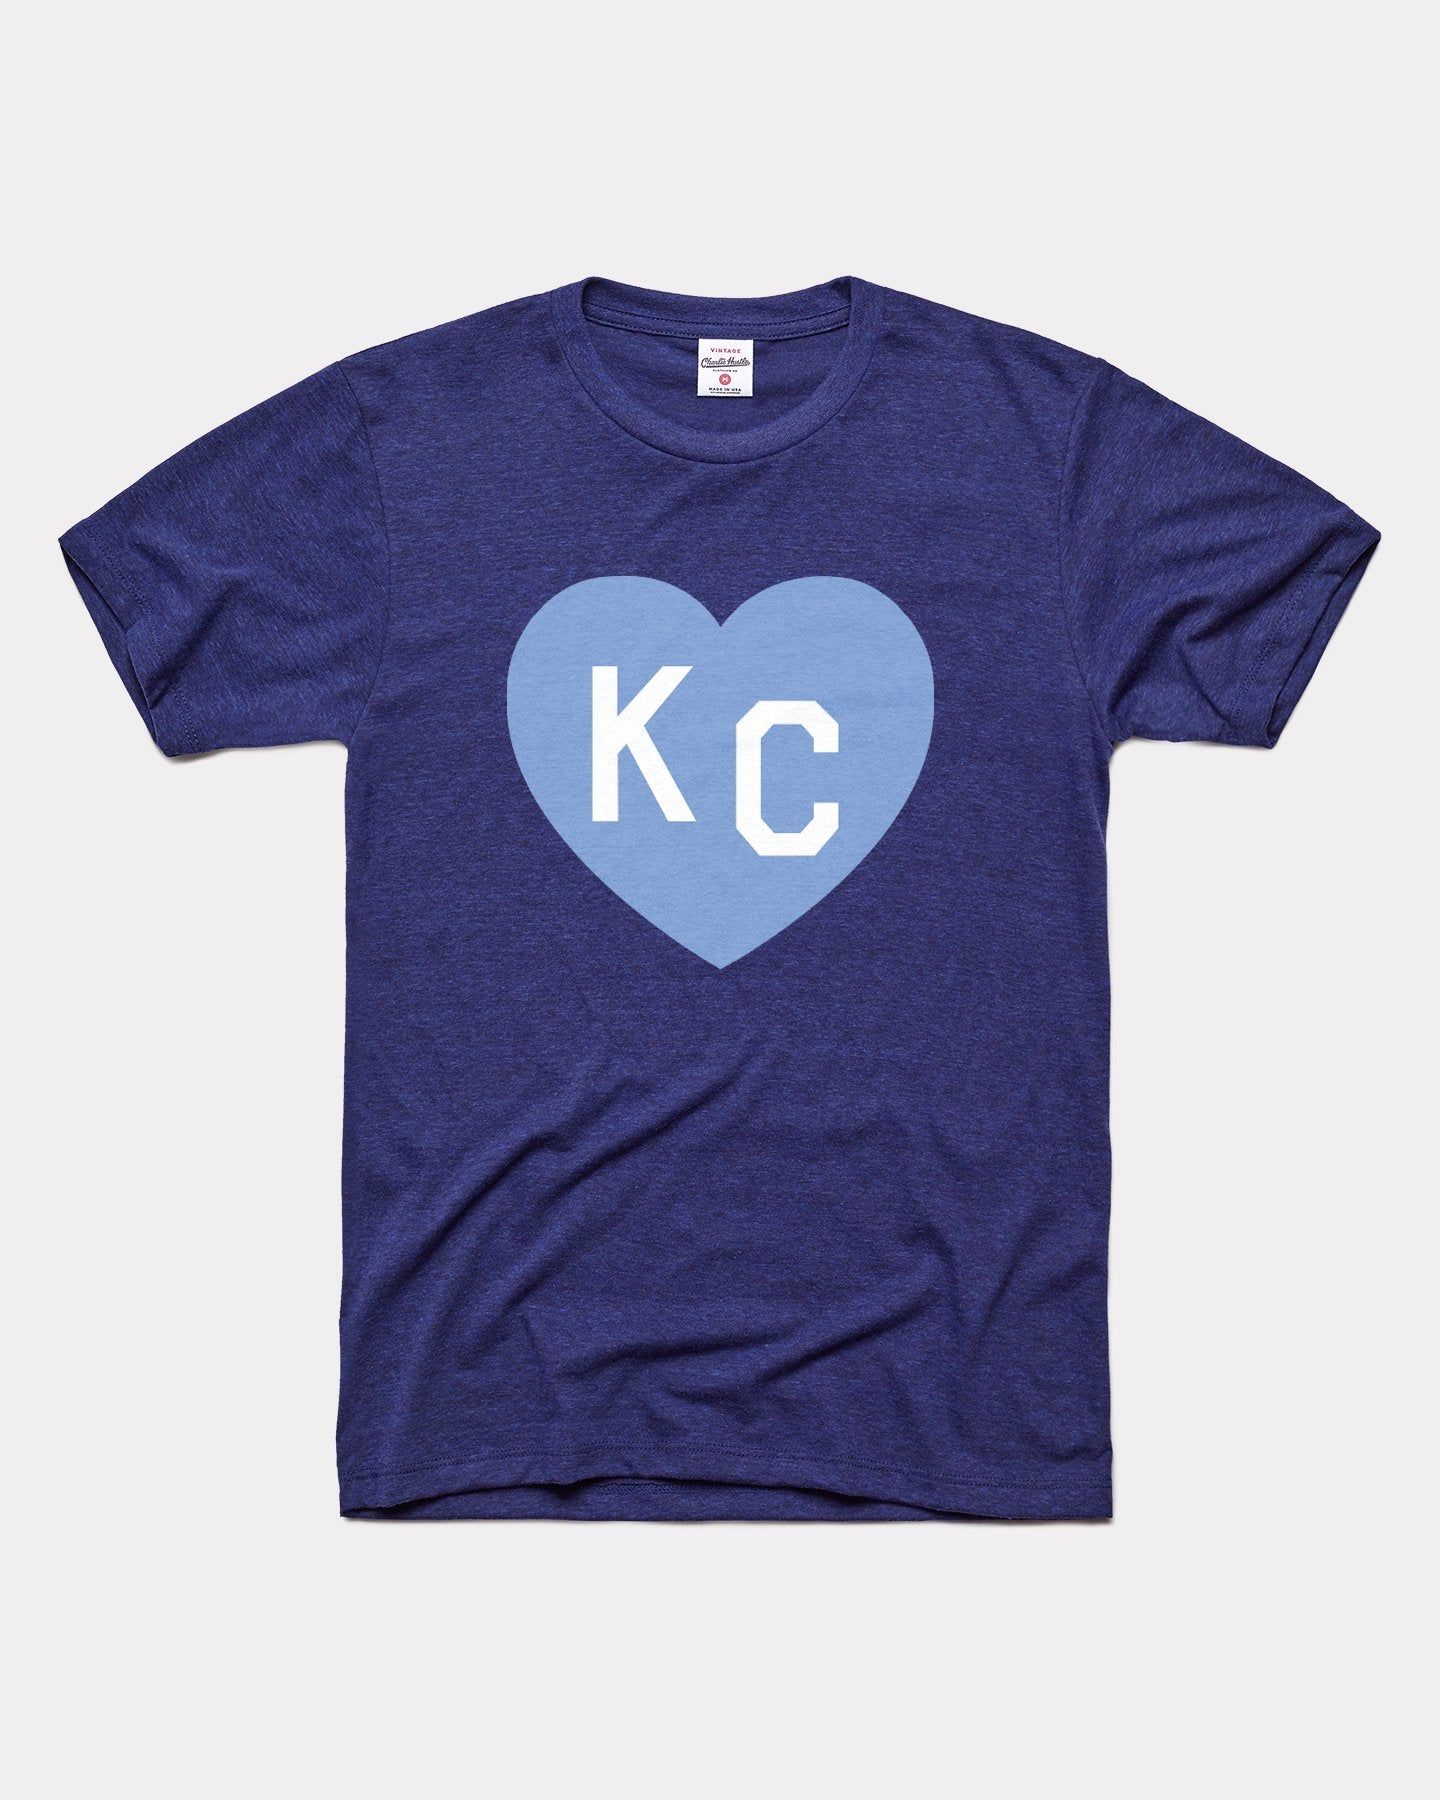 Navy & Light Blue KC Heart Vintage T-Shirt